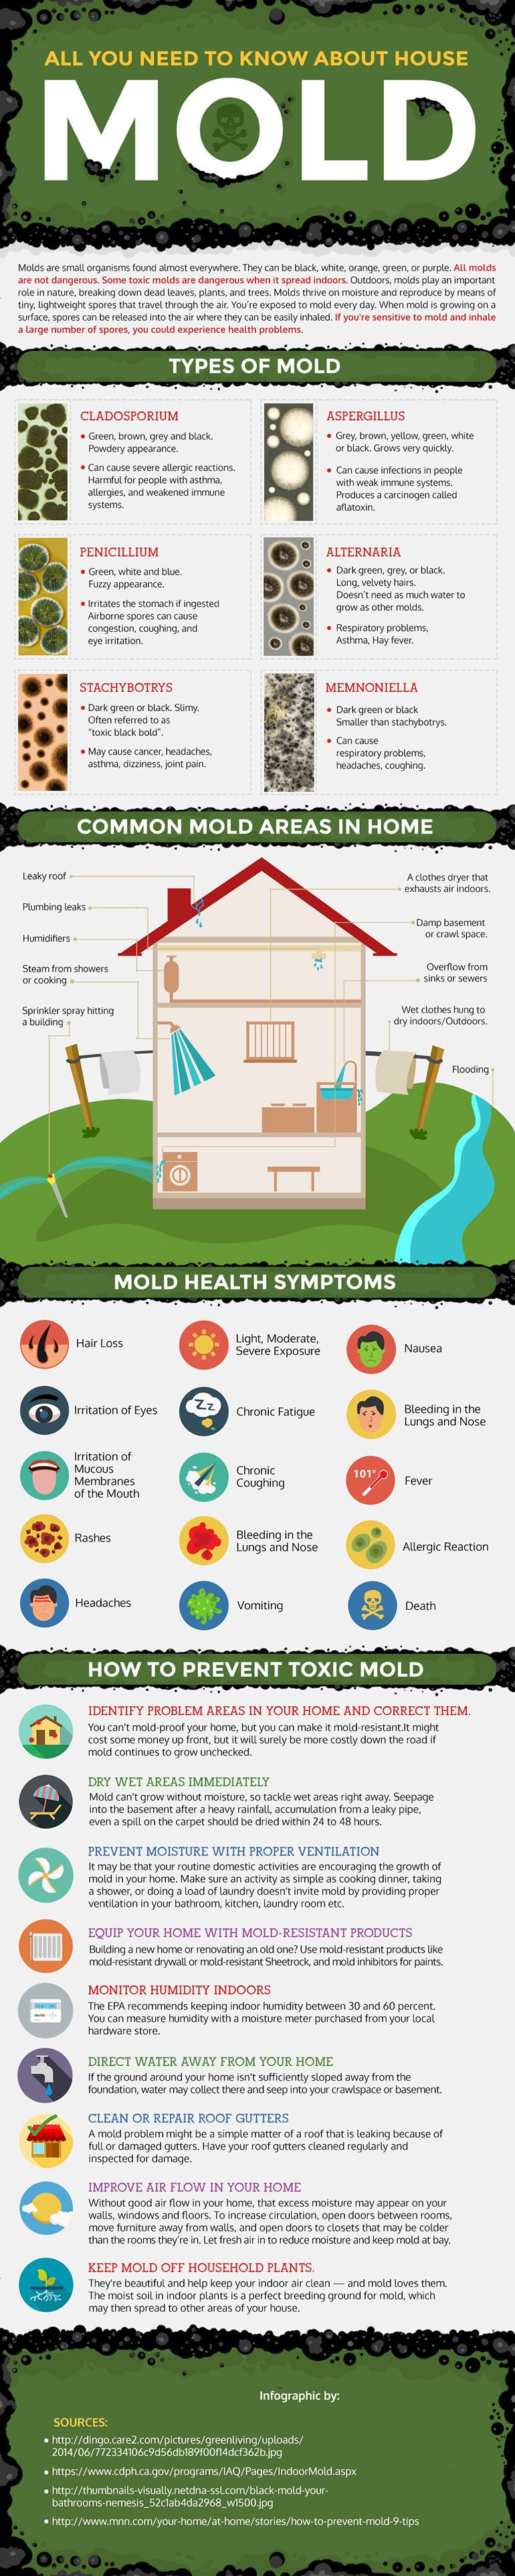 How can you tell if you have black mold  A plumbers guide on how to prevent mold in your house Do on audit